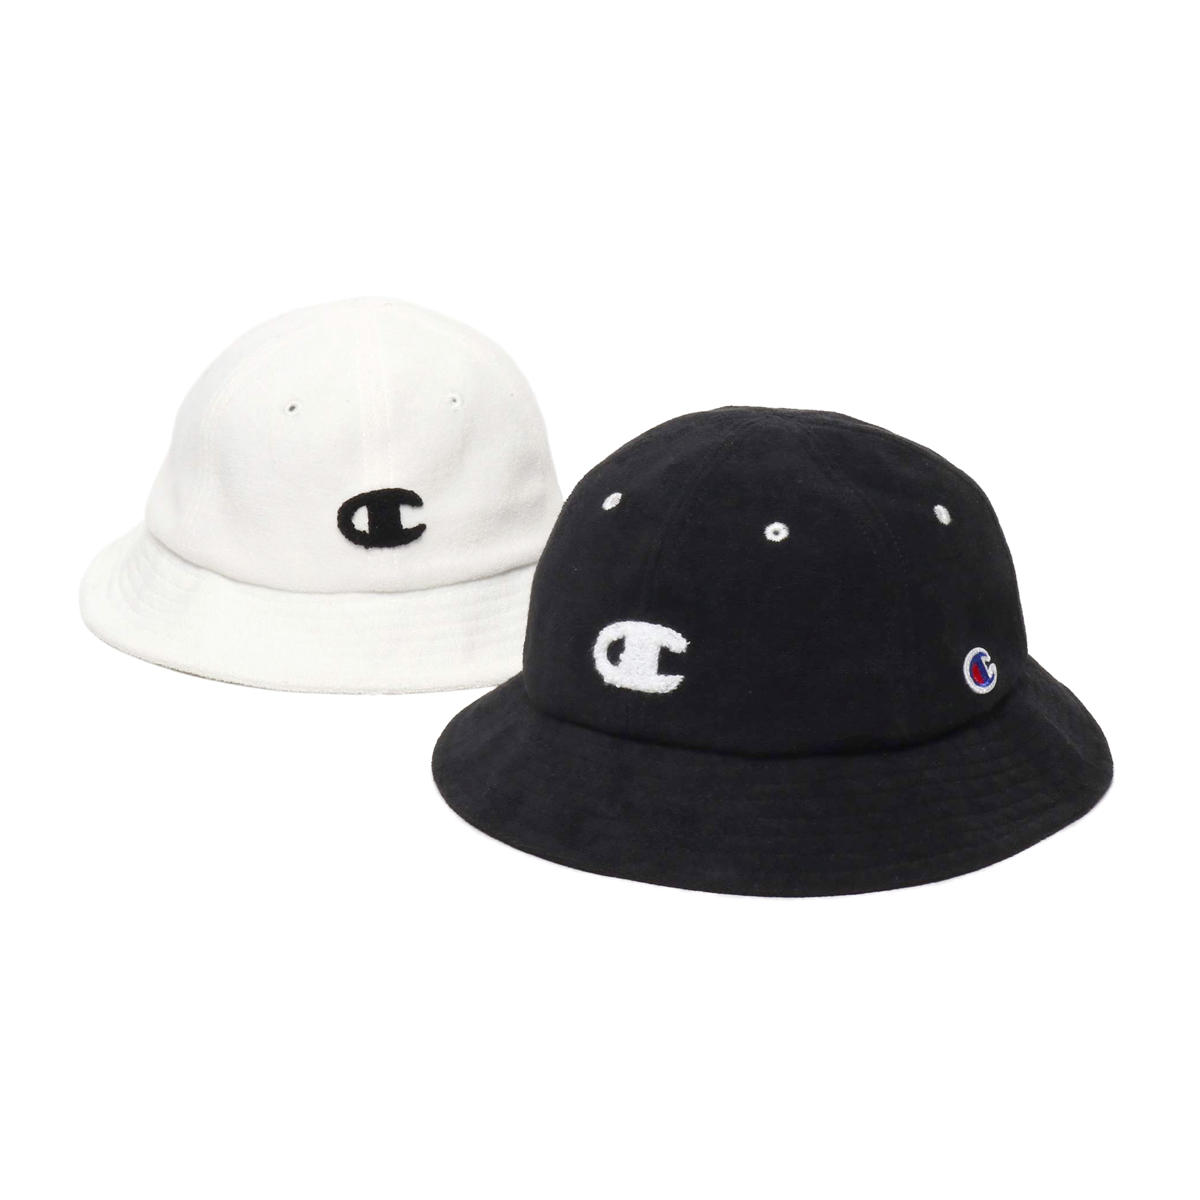 CHAMPION x ATMOS LAB PILE HAT